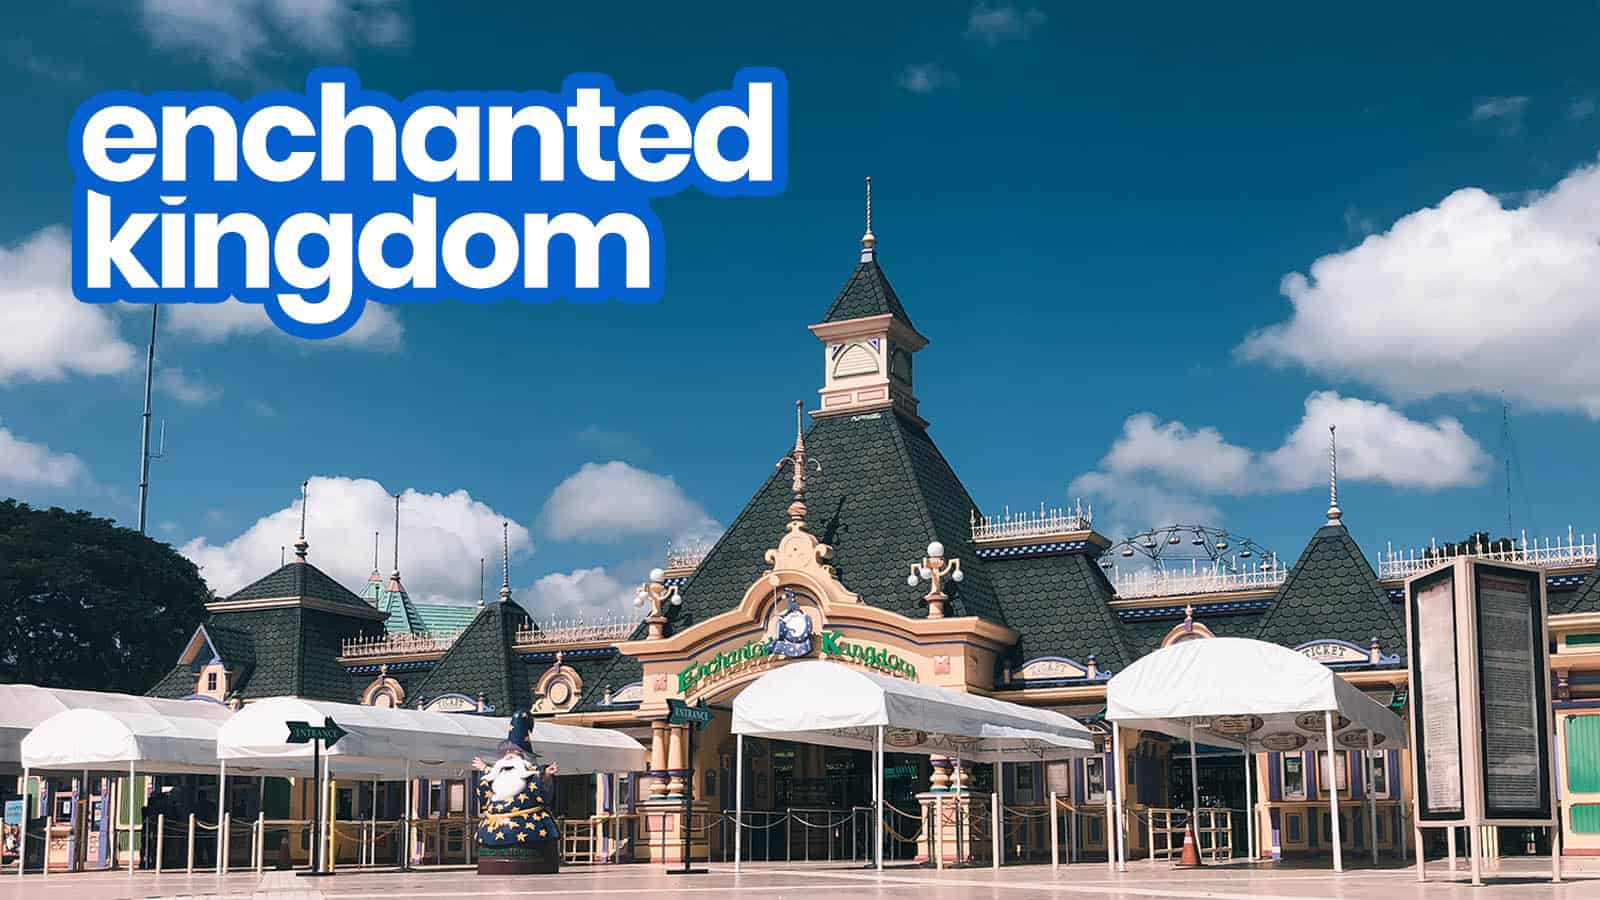 ENCHANTED KINGDOM GUIDE: Discounted Tickets, Schedule, Best Rides